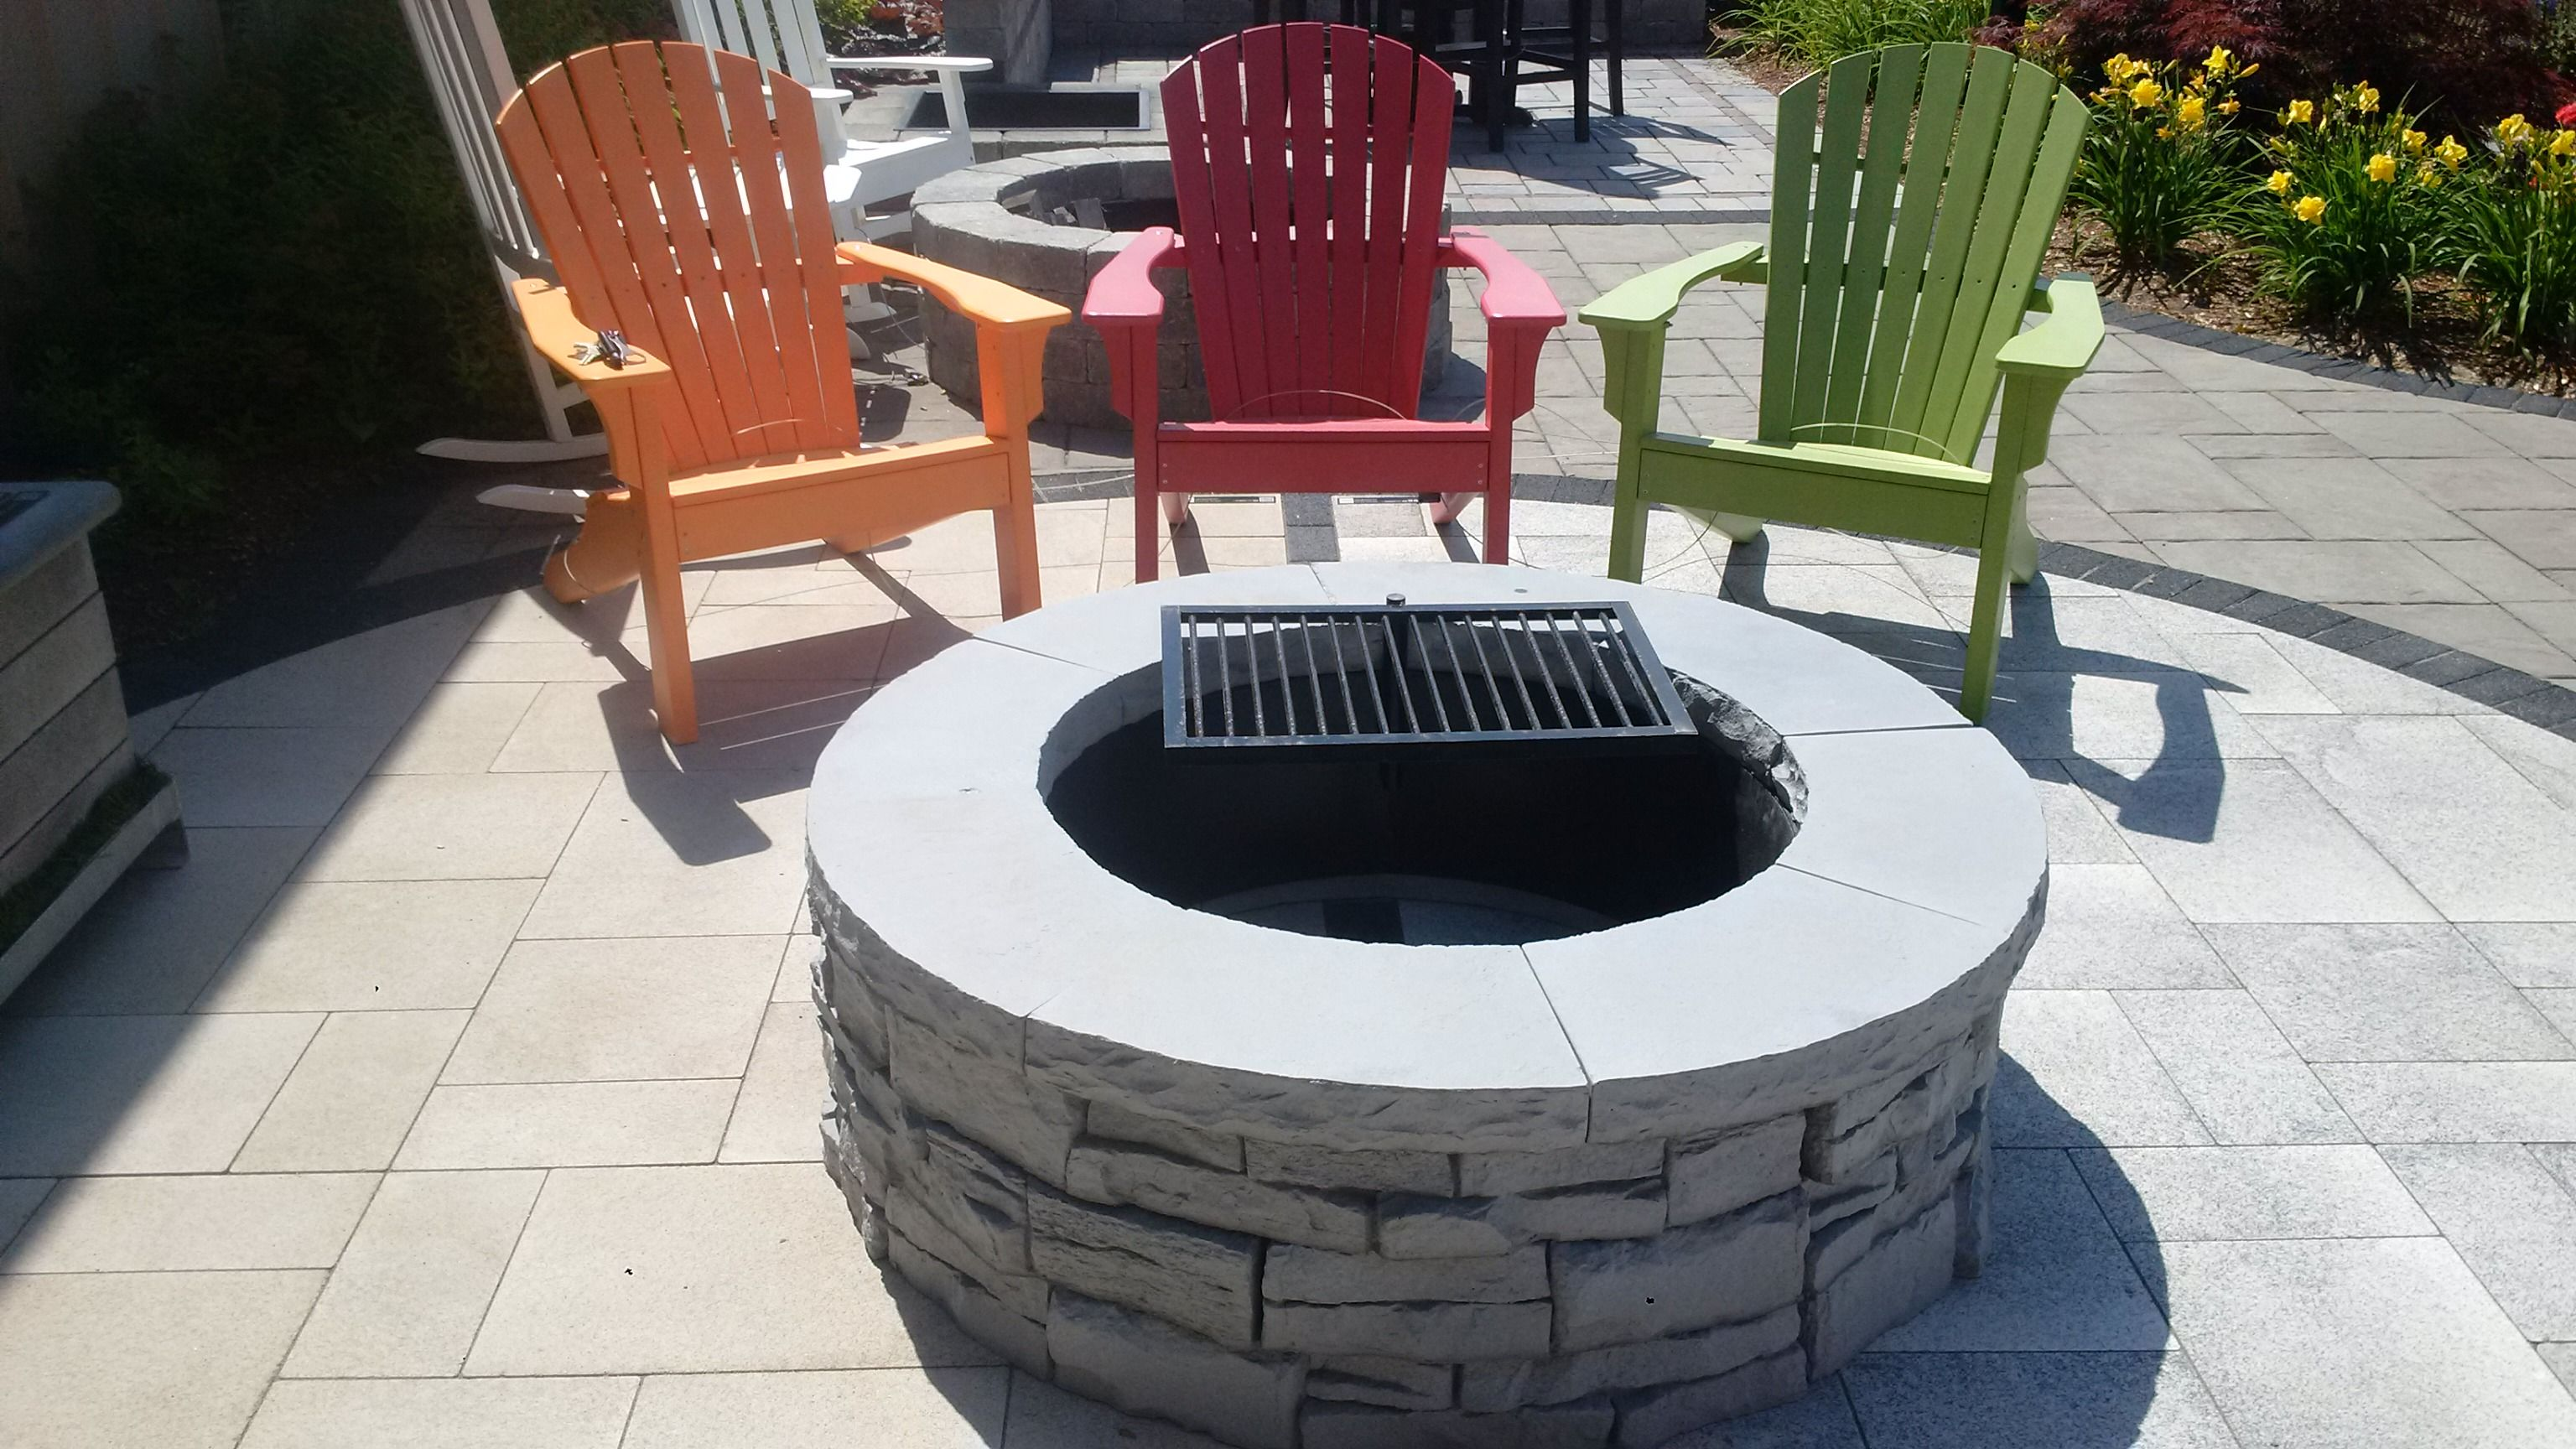 New For 2015 The Rivercrest Fire Pit Kit Has An Outside